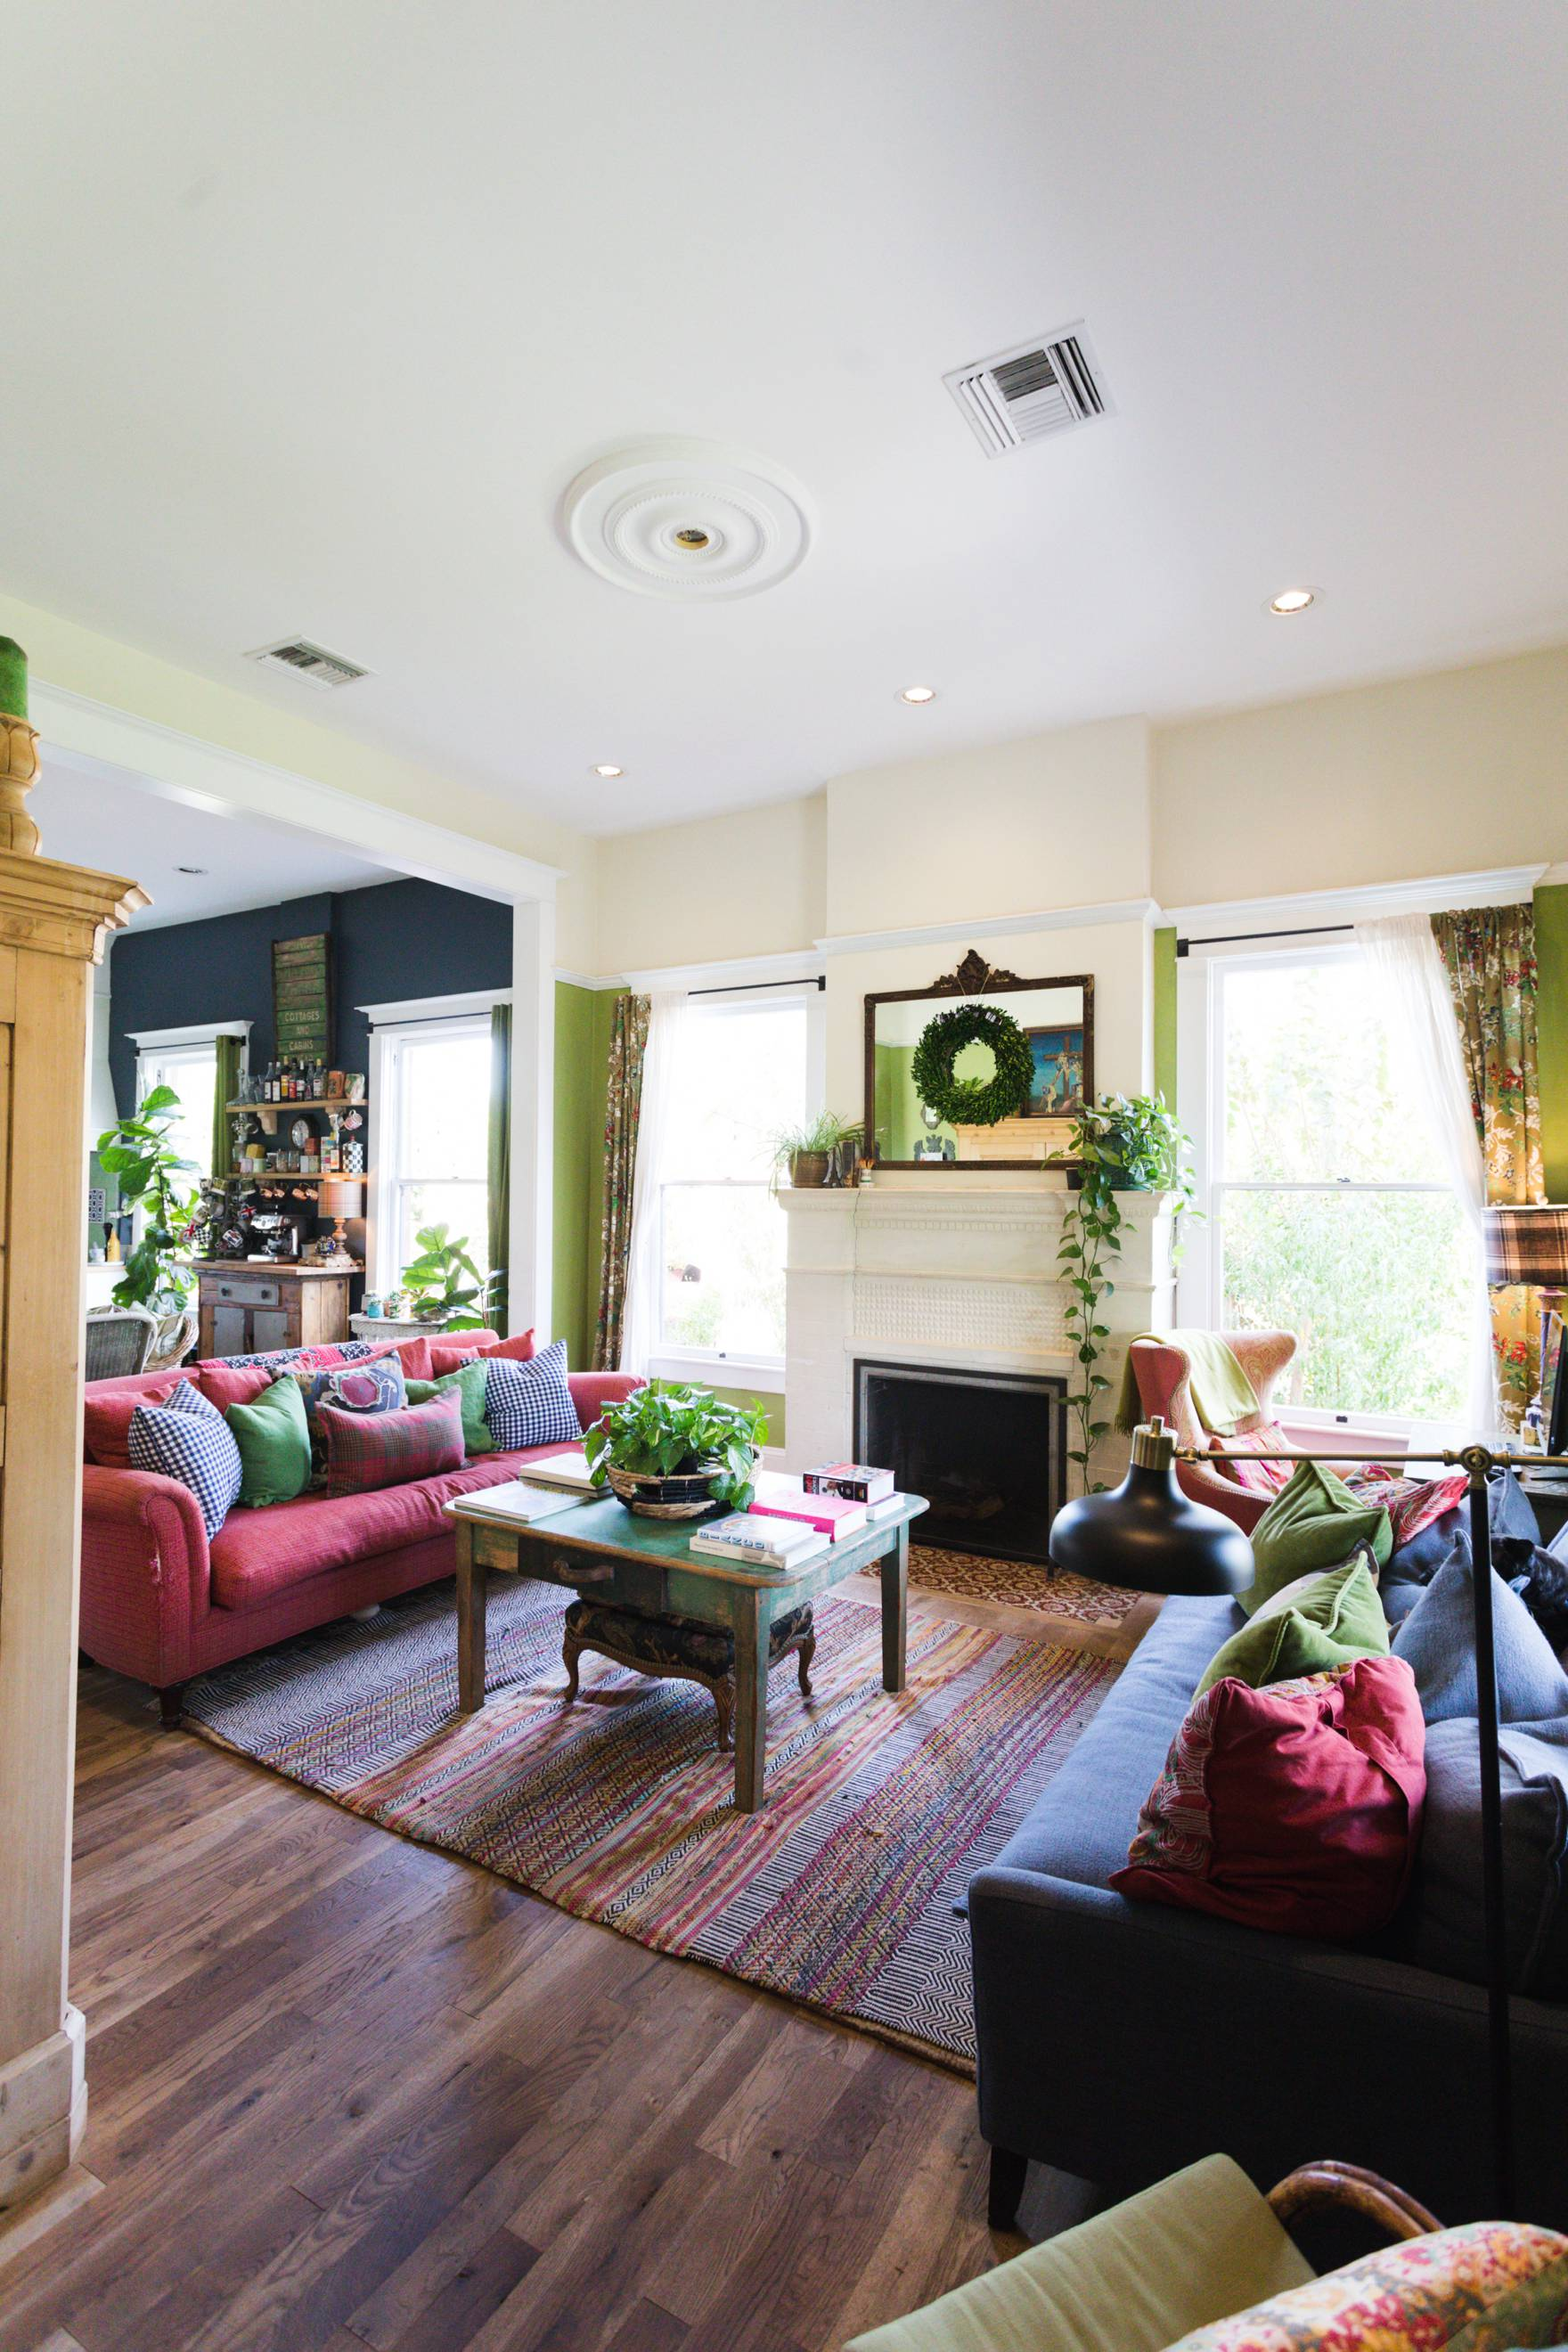 Home Tour of Boho Farm and Home in Downtown Phoenix - cottage brick style home from 1903 Living room, bright airy space